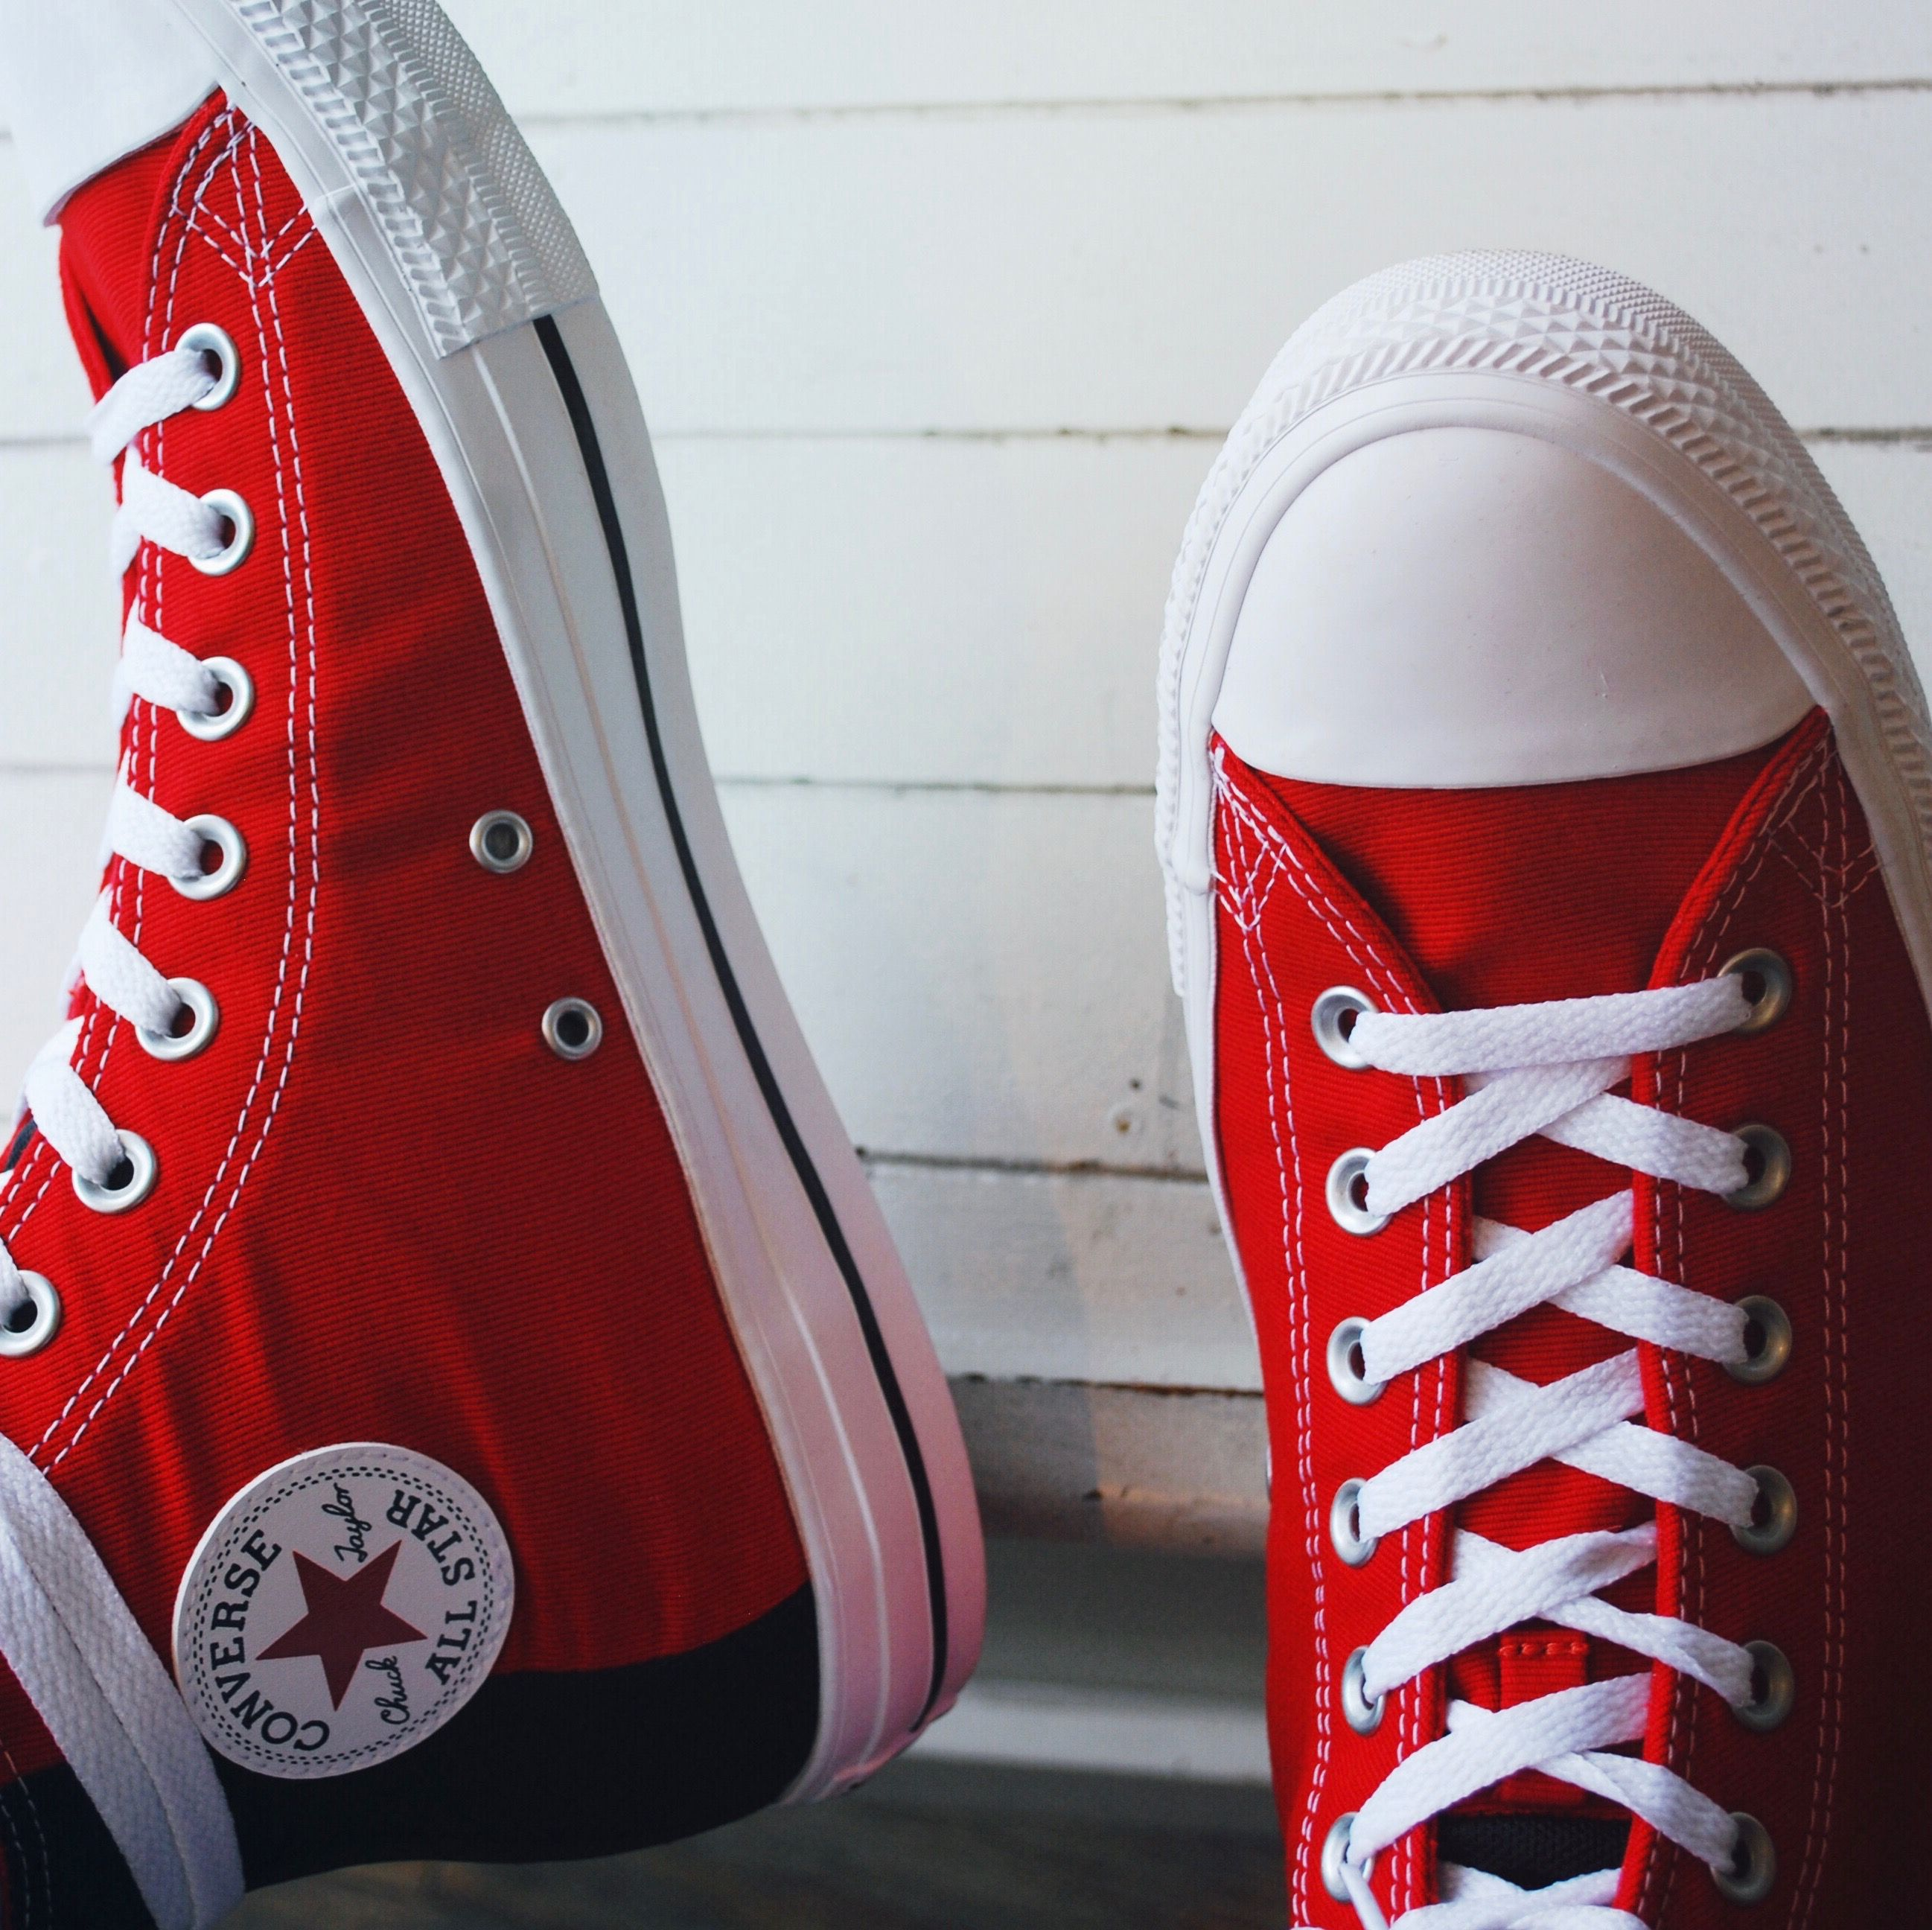 Converse Chuck Taylor All Star II Hi Tops In Red | Foot